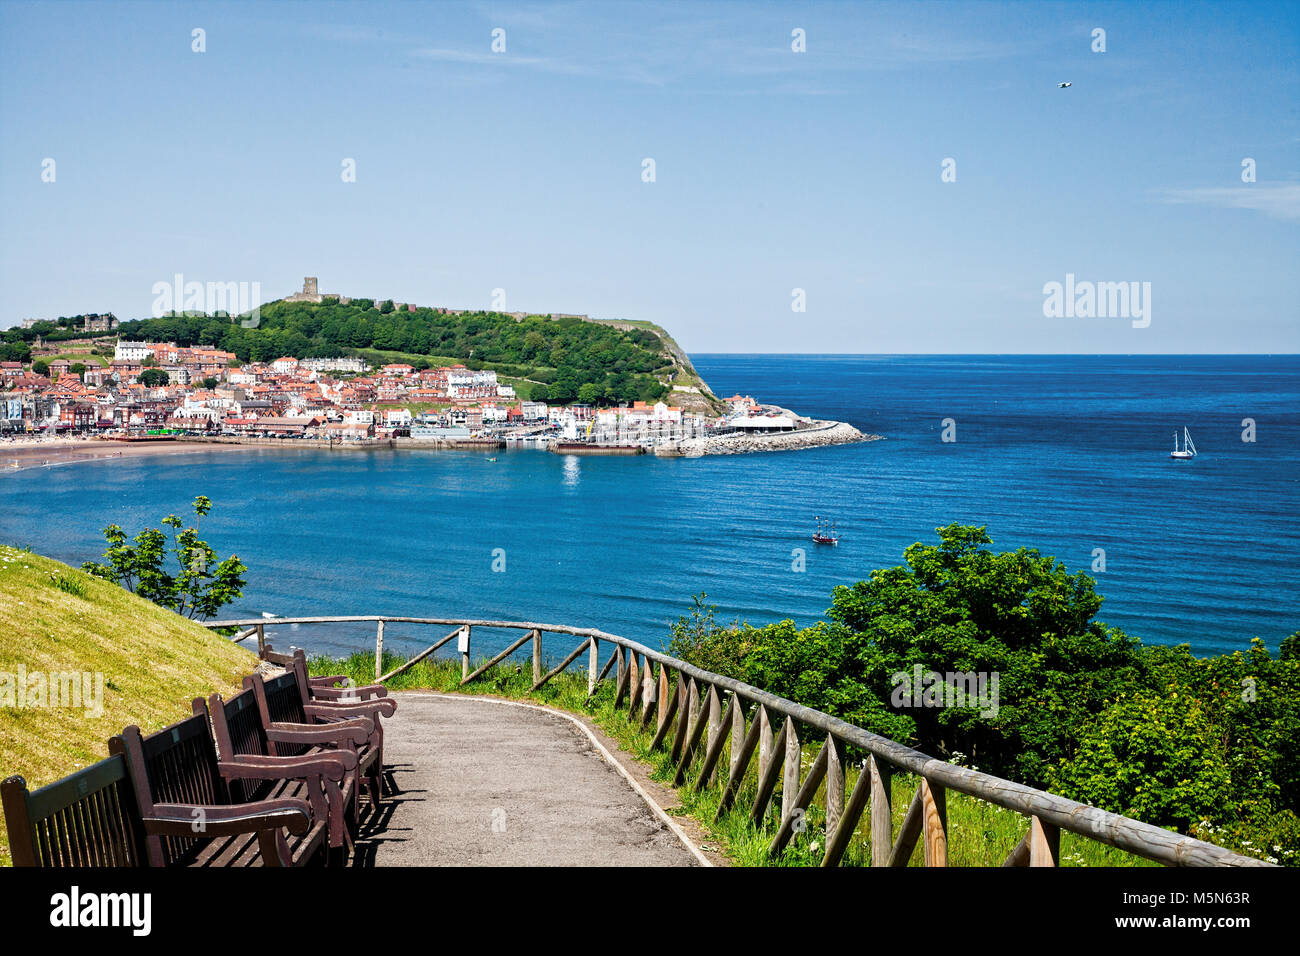 Scarborough is a popular seaside resort on the Yorkshire coast of England. - Stock Image